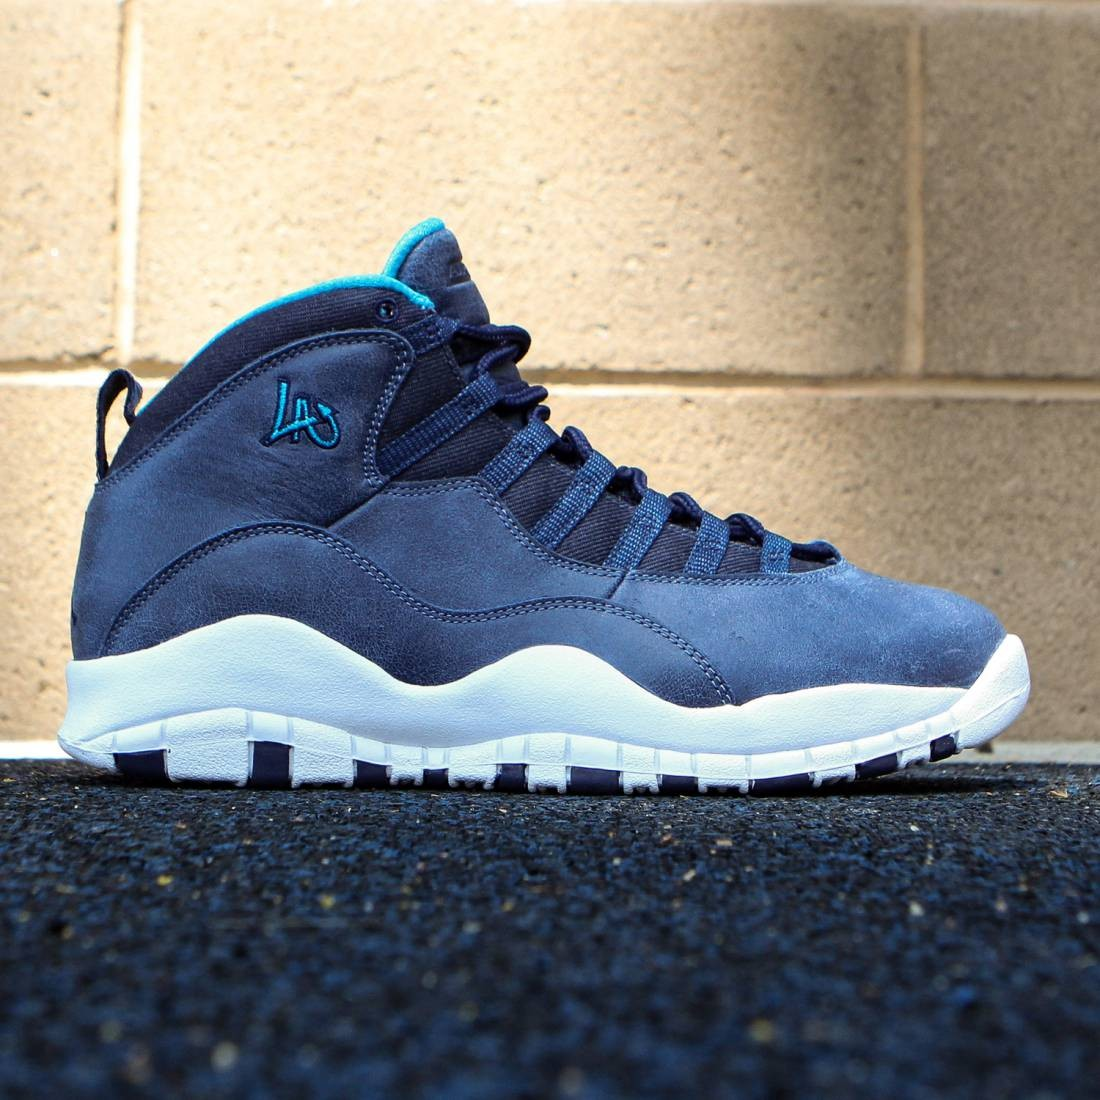 pick up 7dbb7 6882f Jordan Men Air Jordan Retro 10 City Pack LA (ocean fog   ocean fog   blue  lagoon   midnight navy)